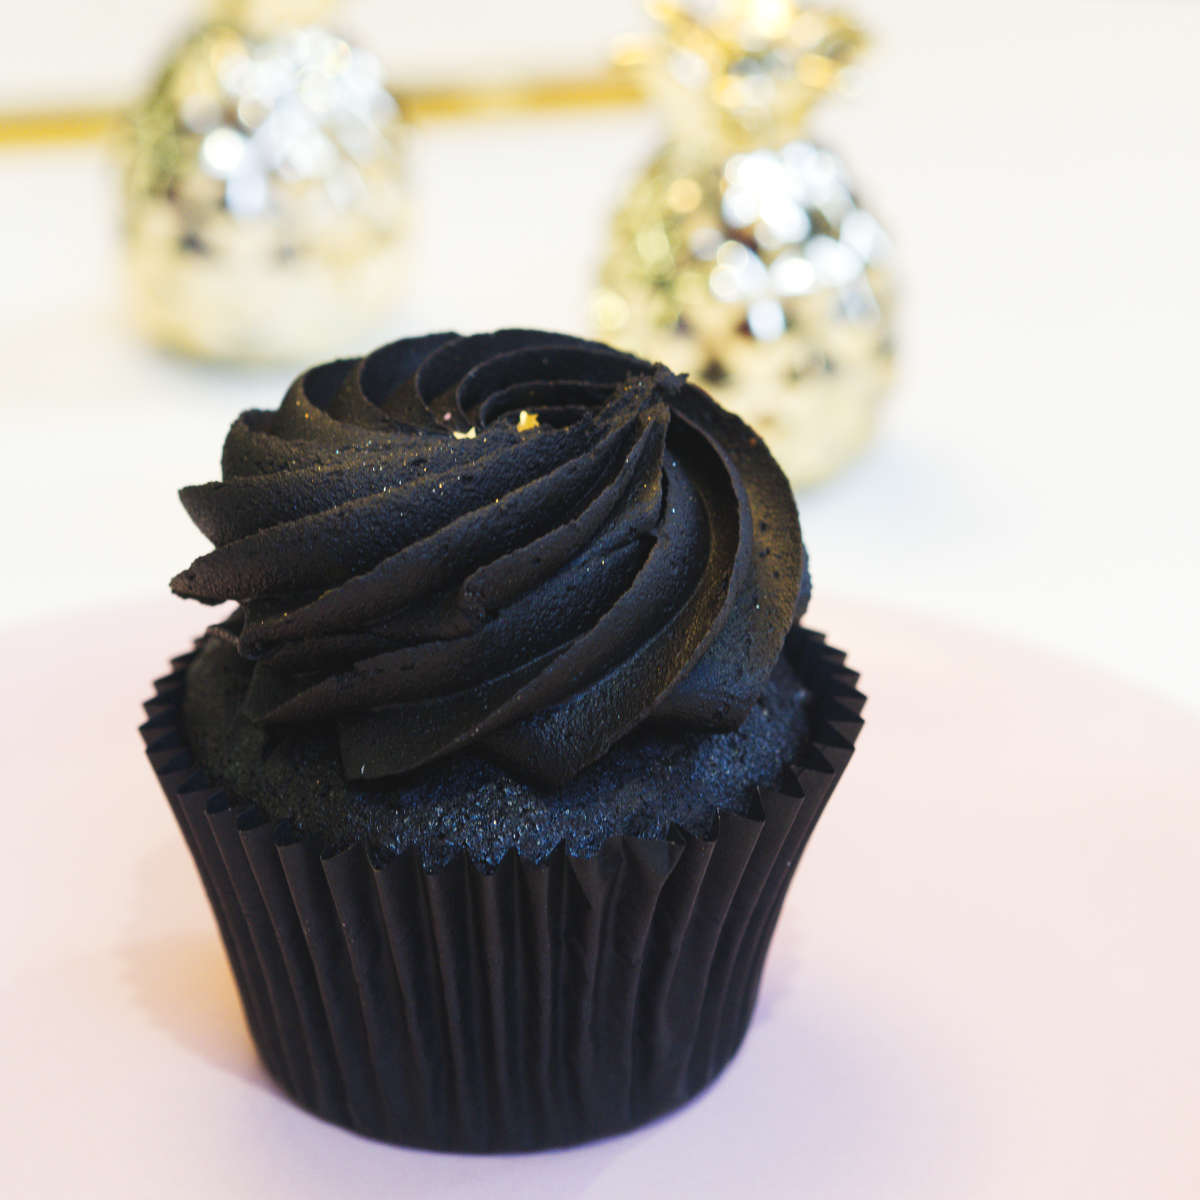 Vegan black velvet cupcake at Naked Bakery, Edinburgh